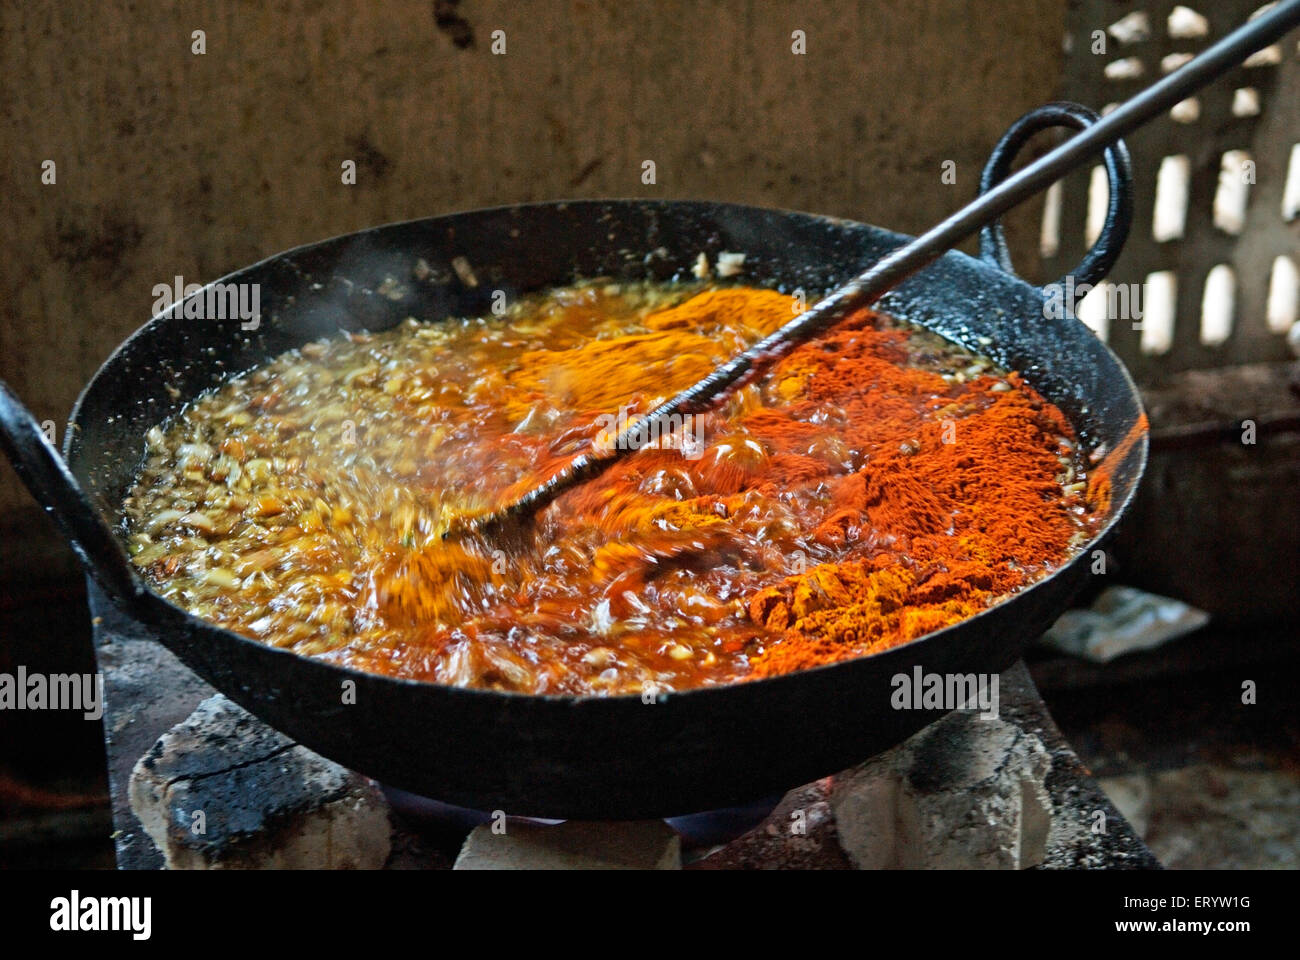 Food preparation at Langar known as community kitchen during celebrations Guru Granth Sahib Nanded  ; Maharashtra - Stock Image